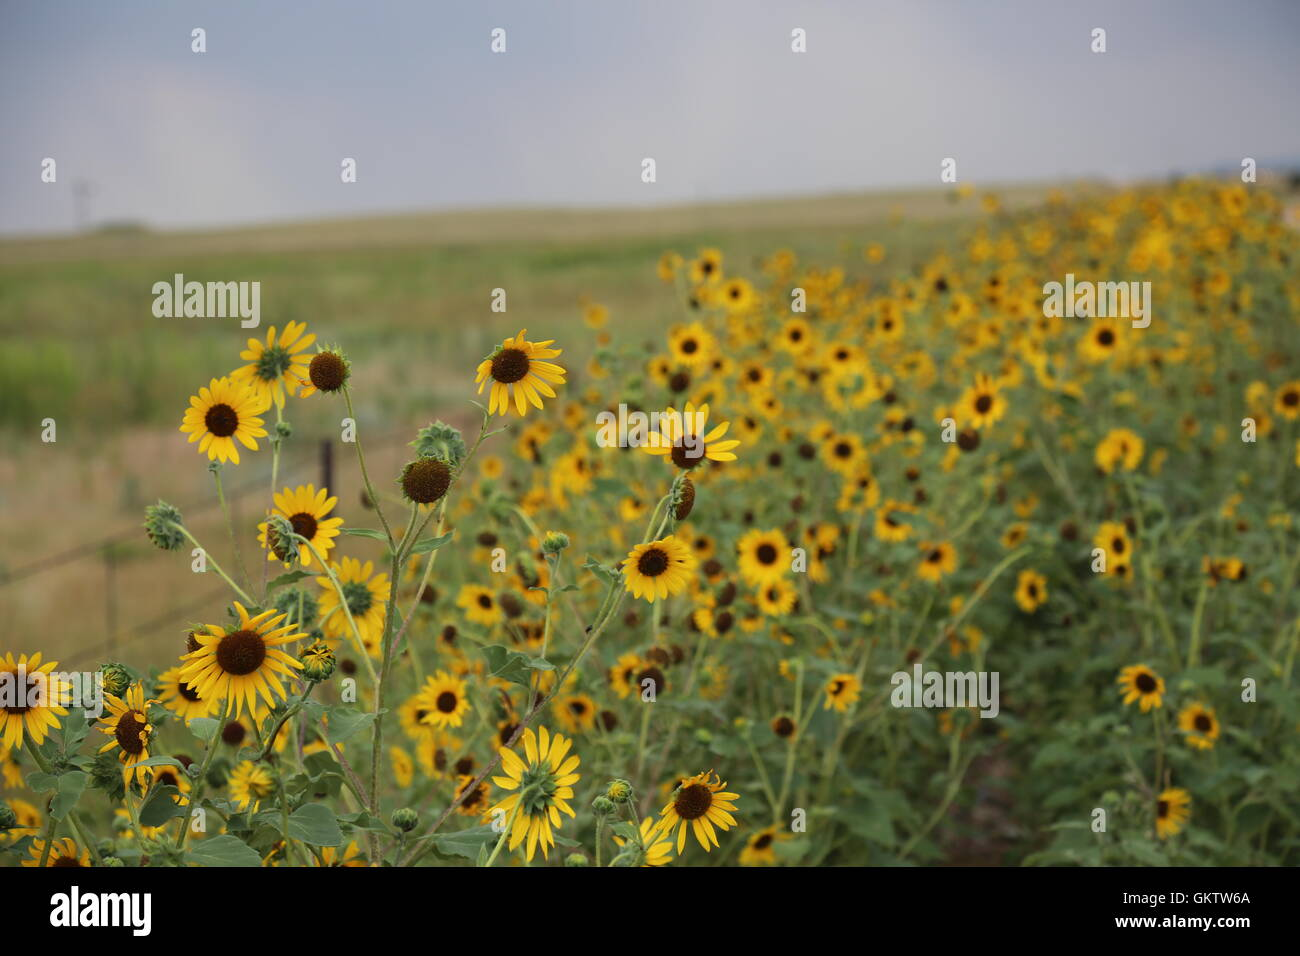 Sunflowers in Carr, Colorado - Stock Image